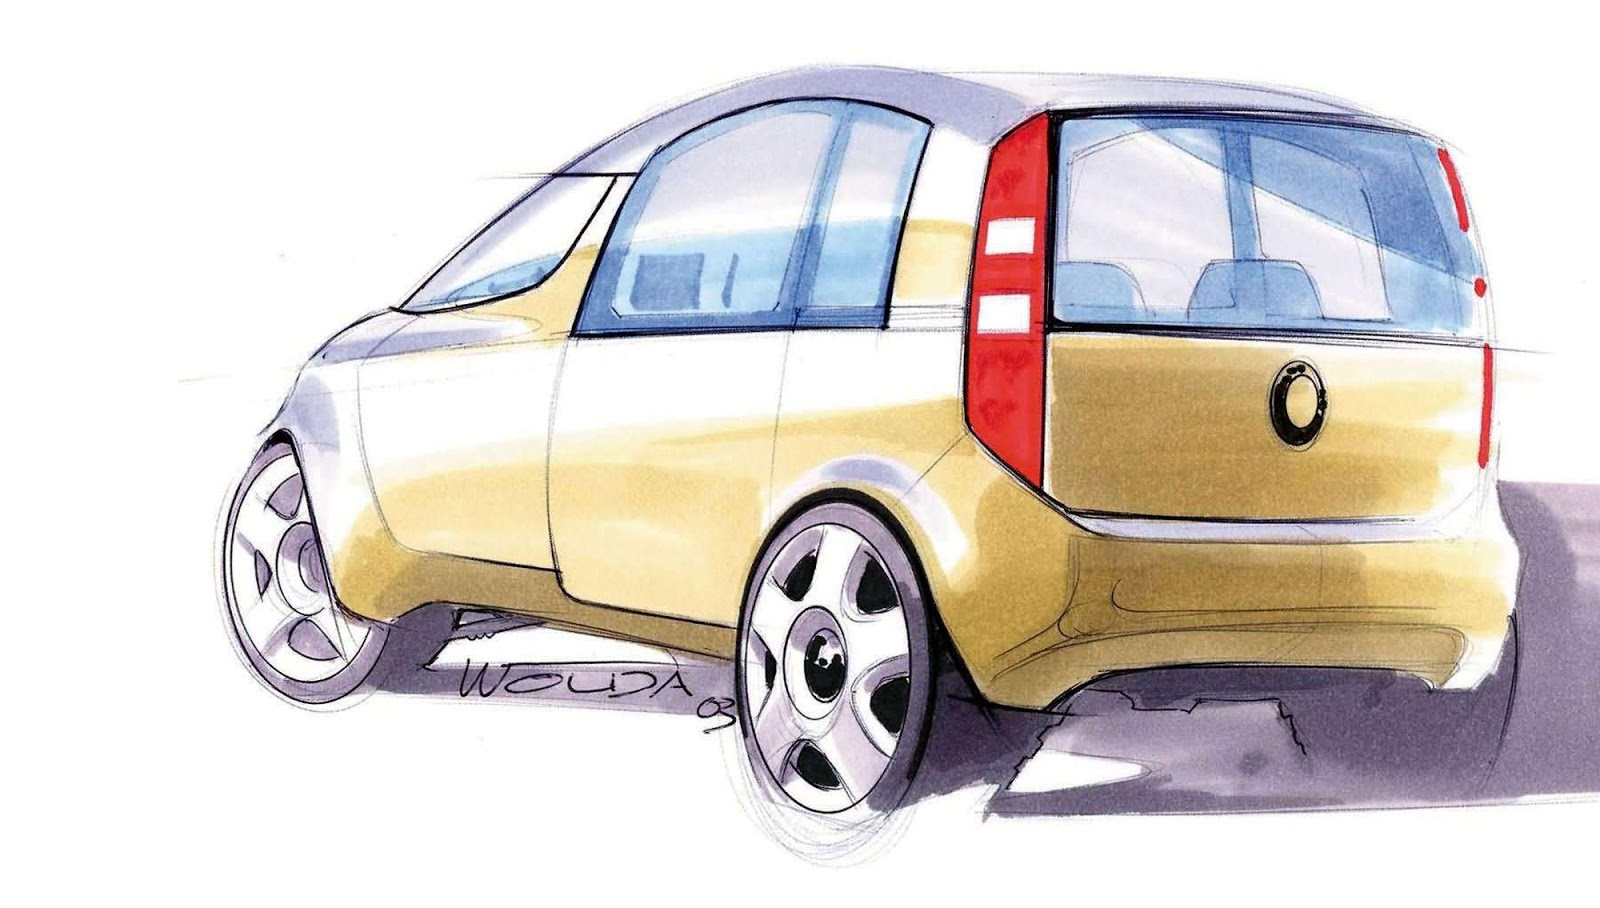 Skoda Roomster sketch by Peter Wouda - early theme, rear view